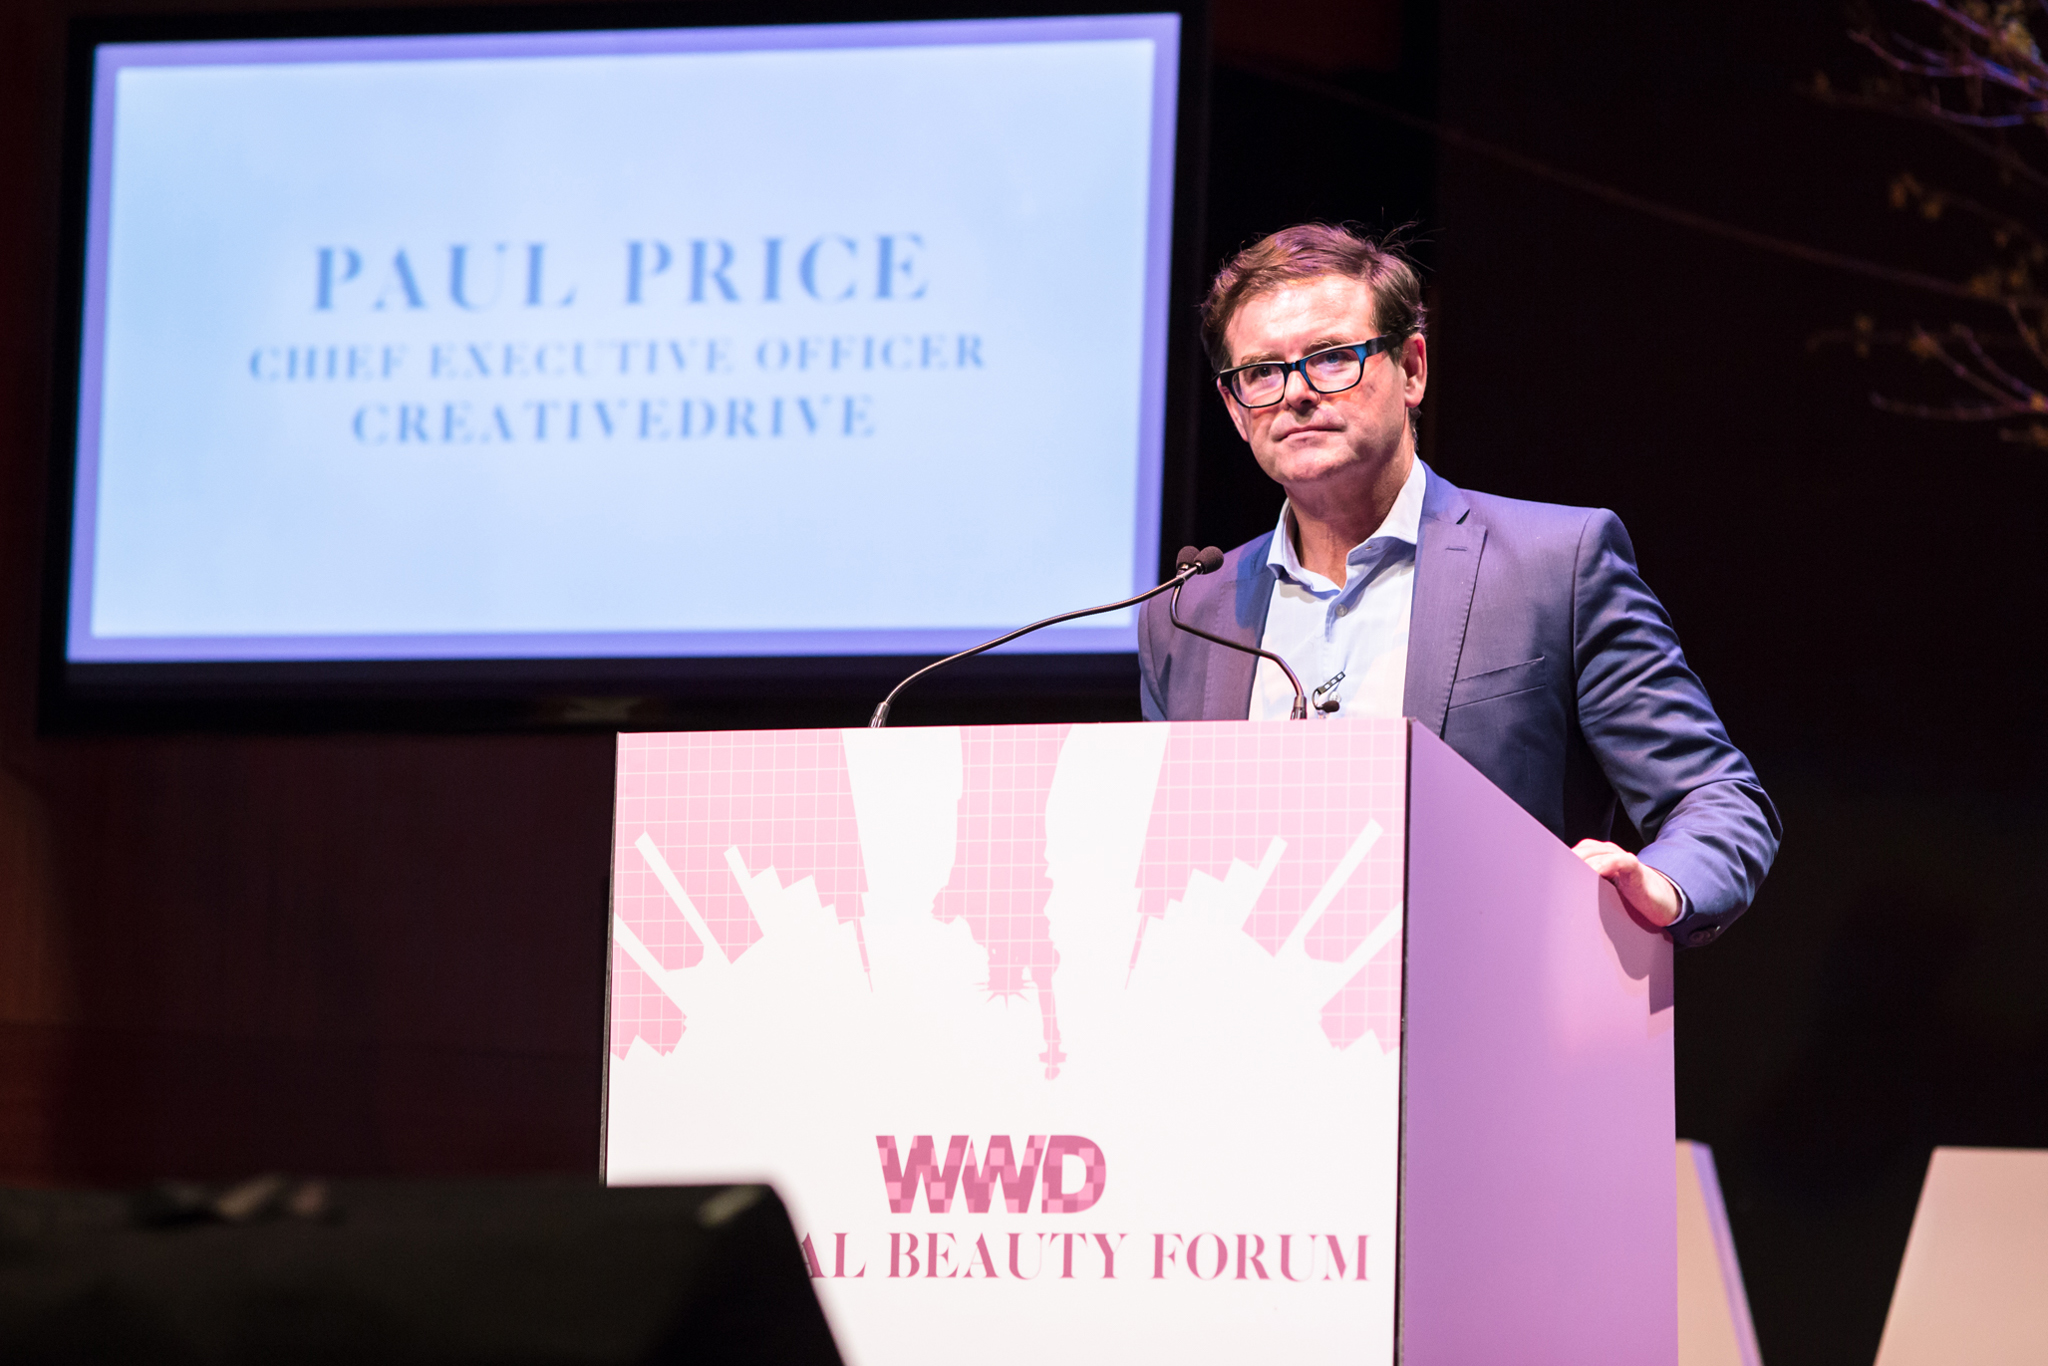 Paul Price at the WWD Digital Beauty Forum - February 11, 2016